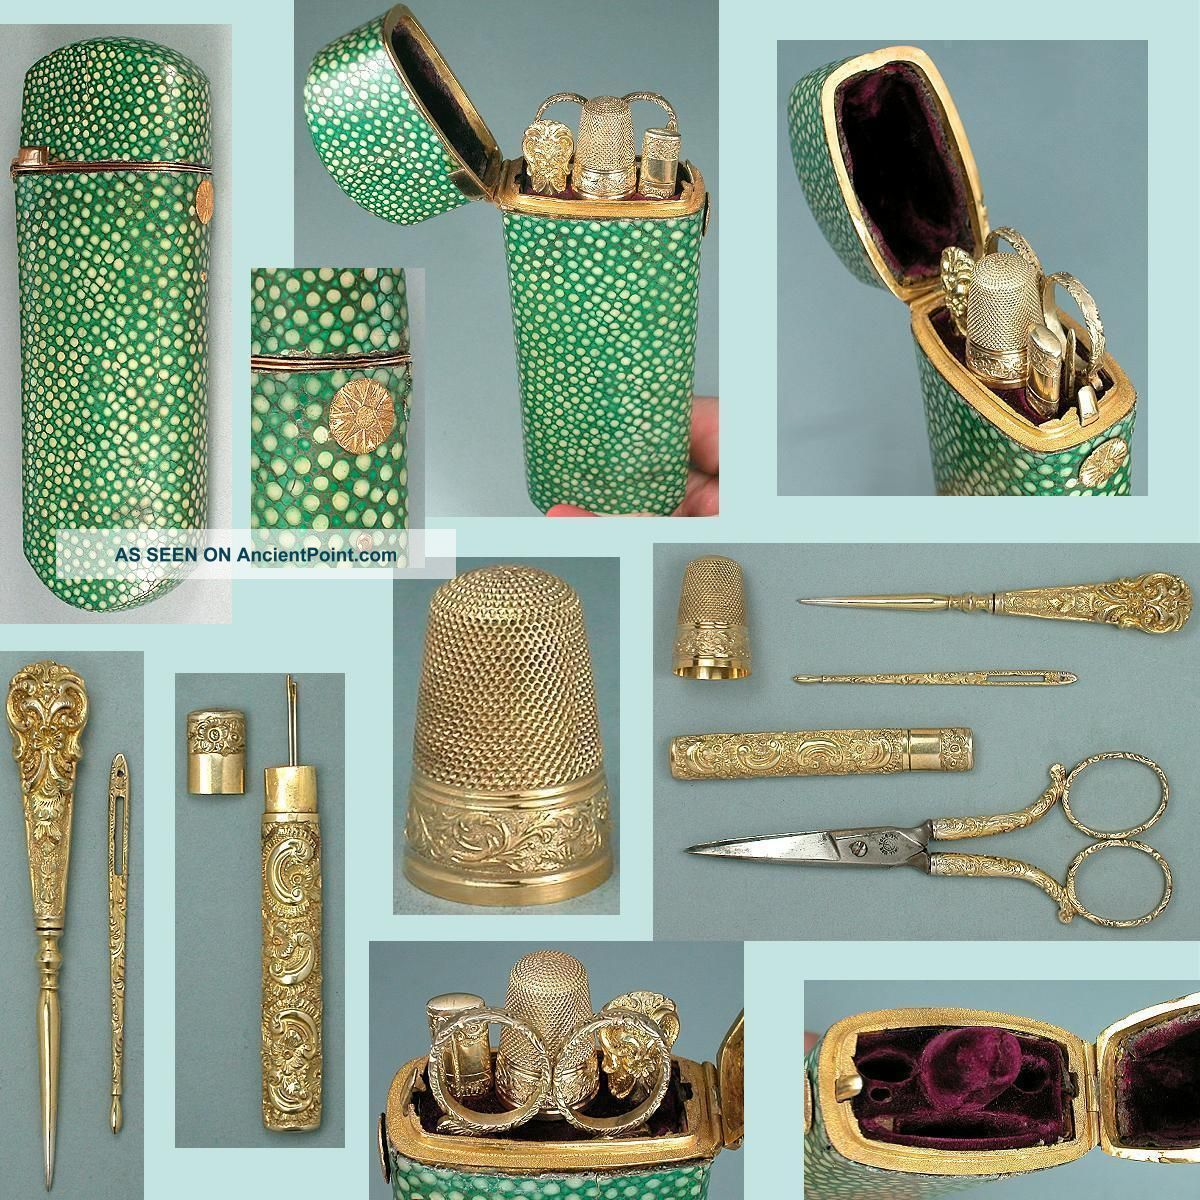 Rare Antique Shagreen & Gold Etui W/ Gilded Silver Sewing Tools Circa 1830 Other Antique Sewing photo